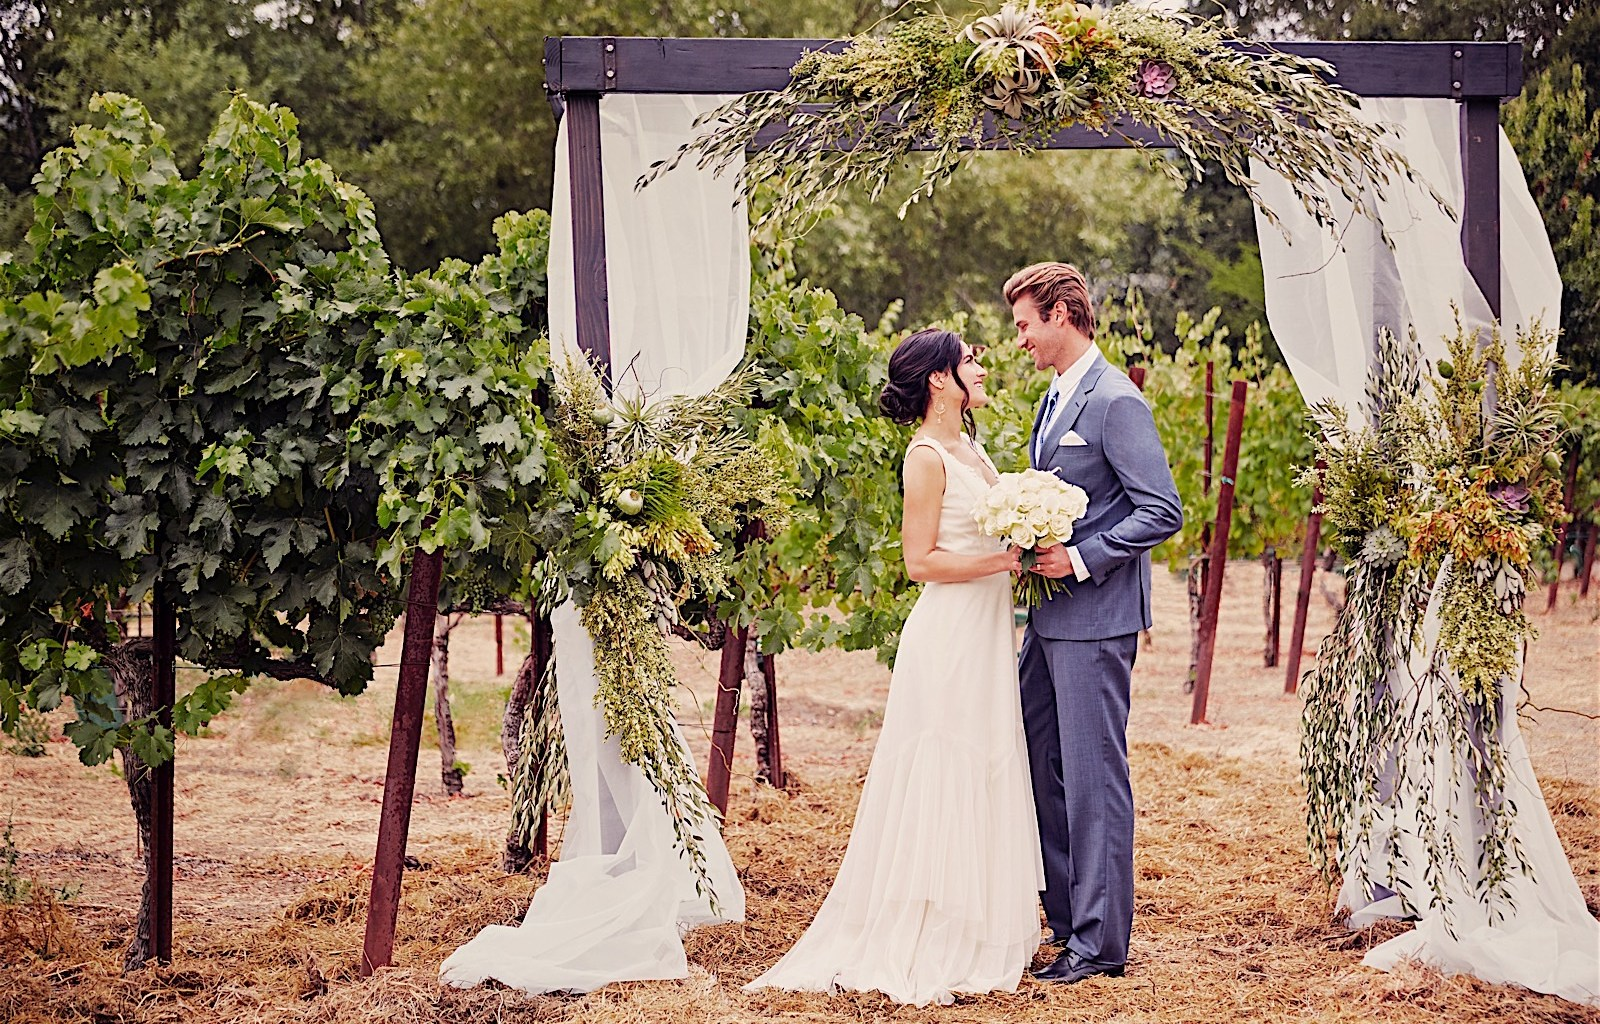 Image provided by The Estate Yountville.